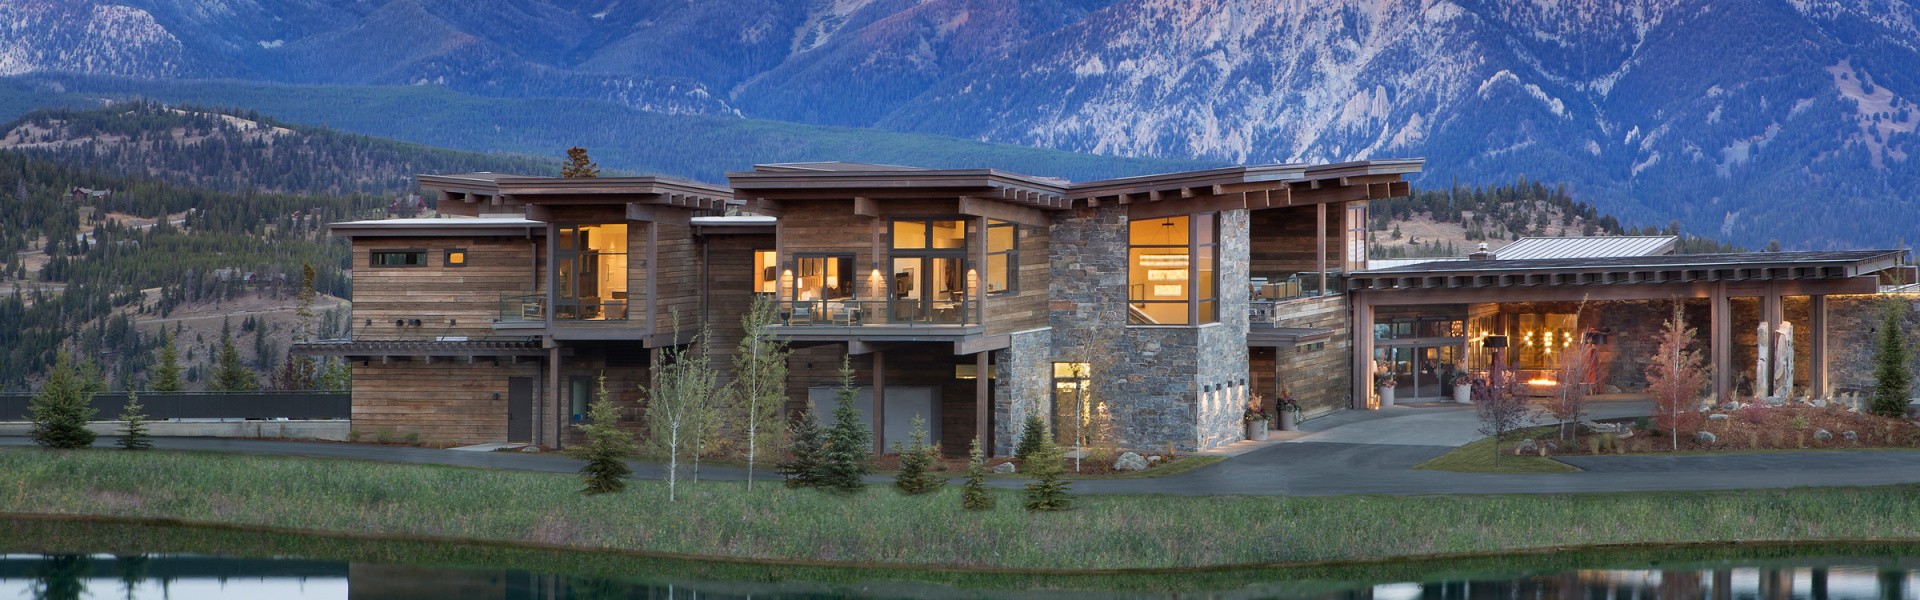 Smart home installation by SAV Digital Environments for Bozeman